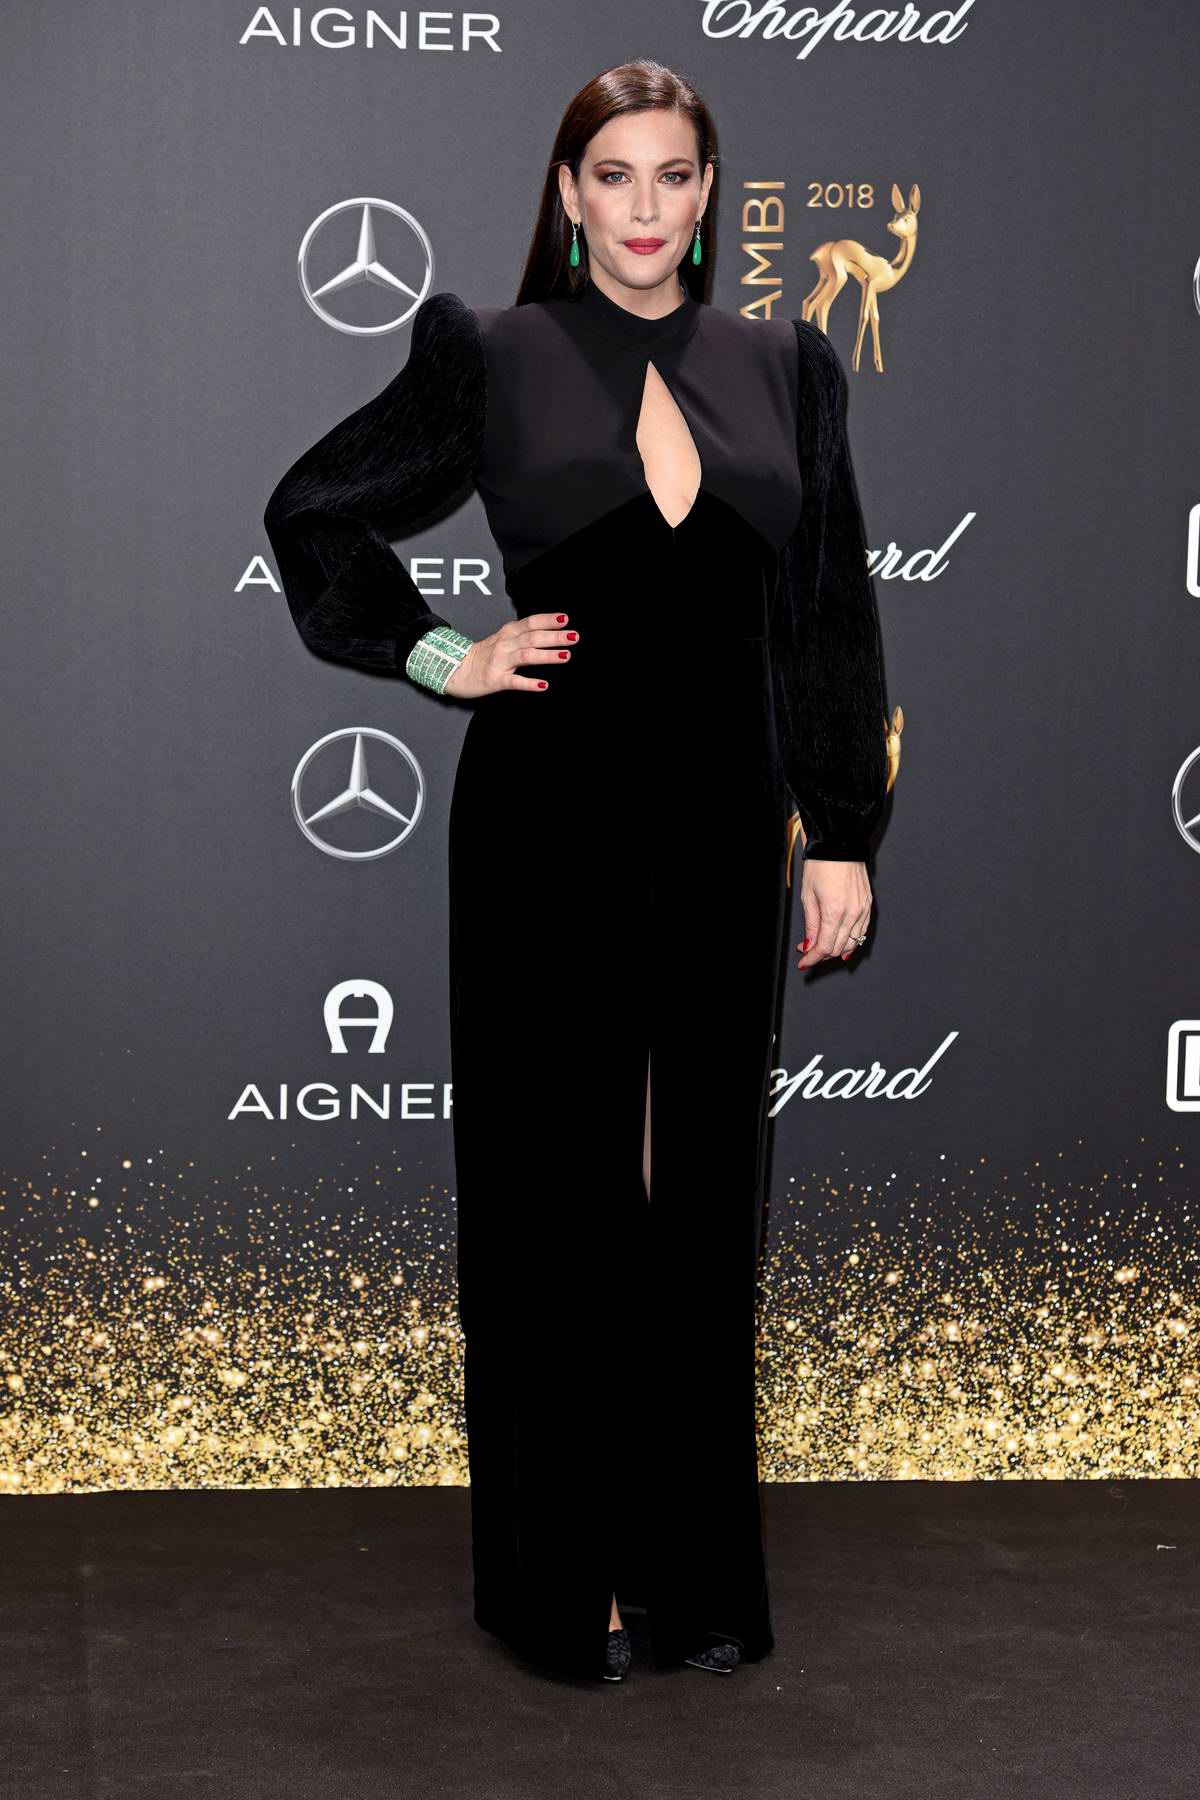 Liv Tyler attends 70th annual Bambi Awards (BAMBI 2018) at Theater at Potsdamer Platz in Berlin, Germany